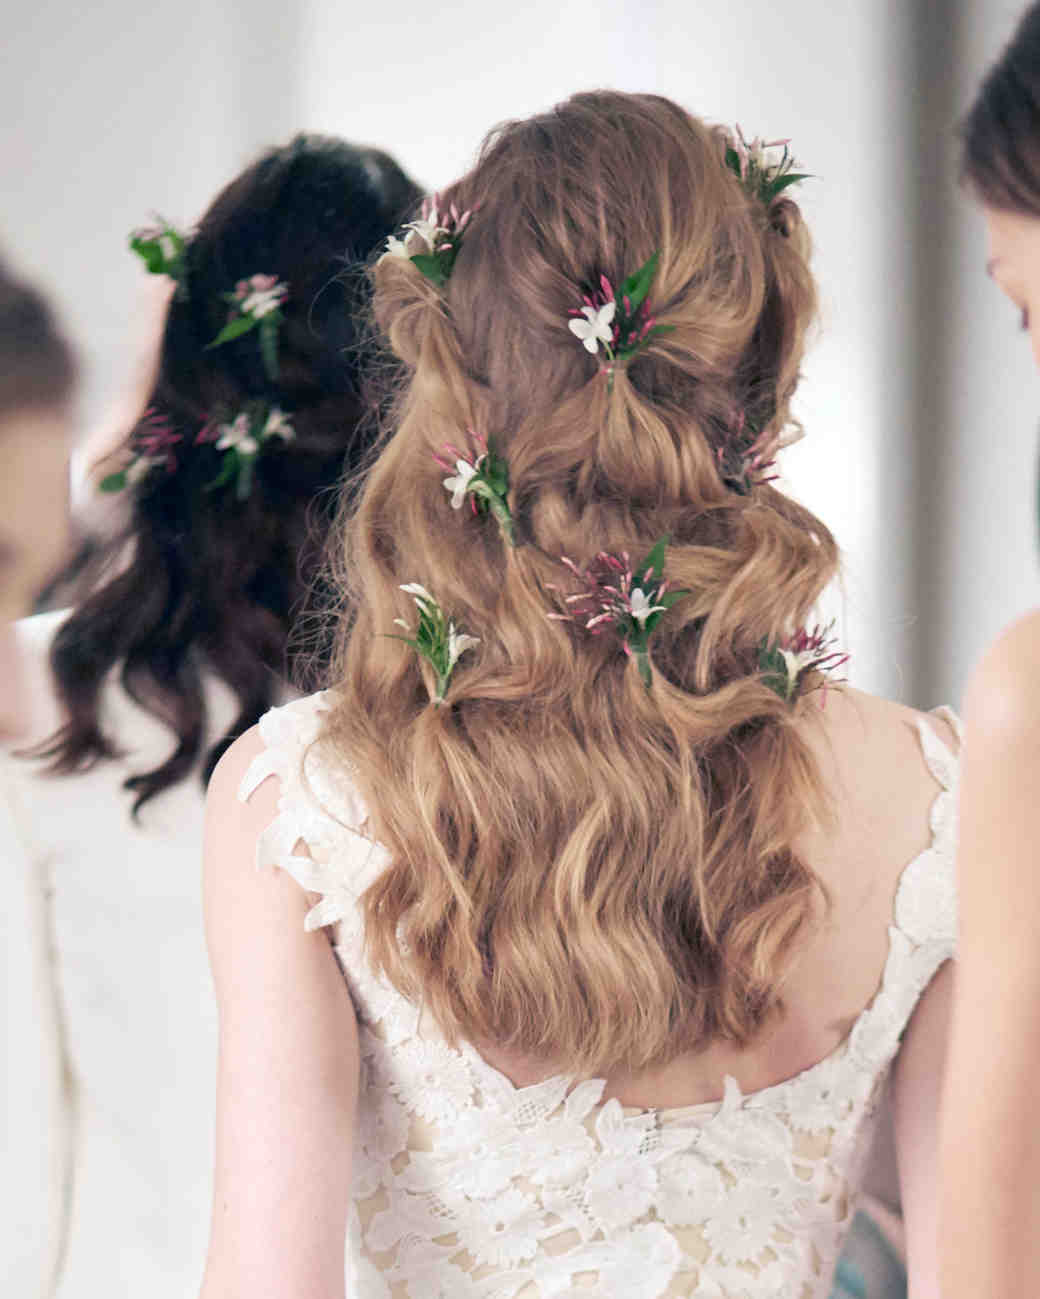 Discussion on this topic: 15 Walk-Down-the-Aisle-Ready Wedding Hairstyles for ShortHair, 15-walk-down-the-aisle-ready-wedding-hairstyles-for-shorthair/